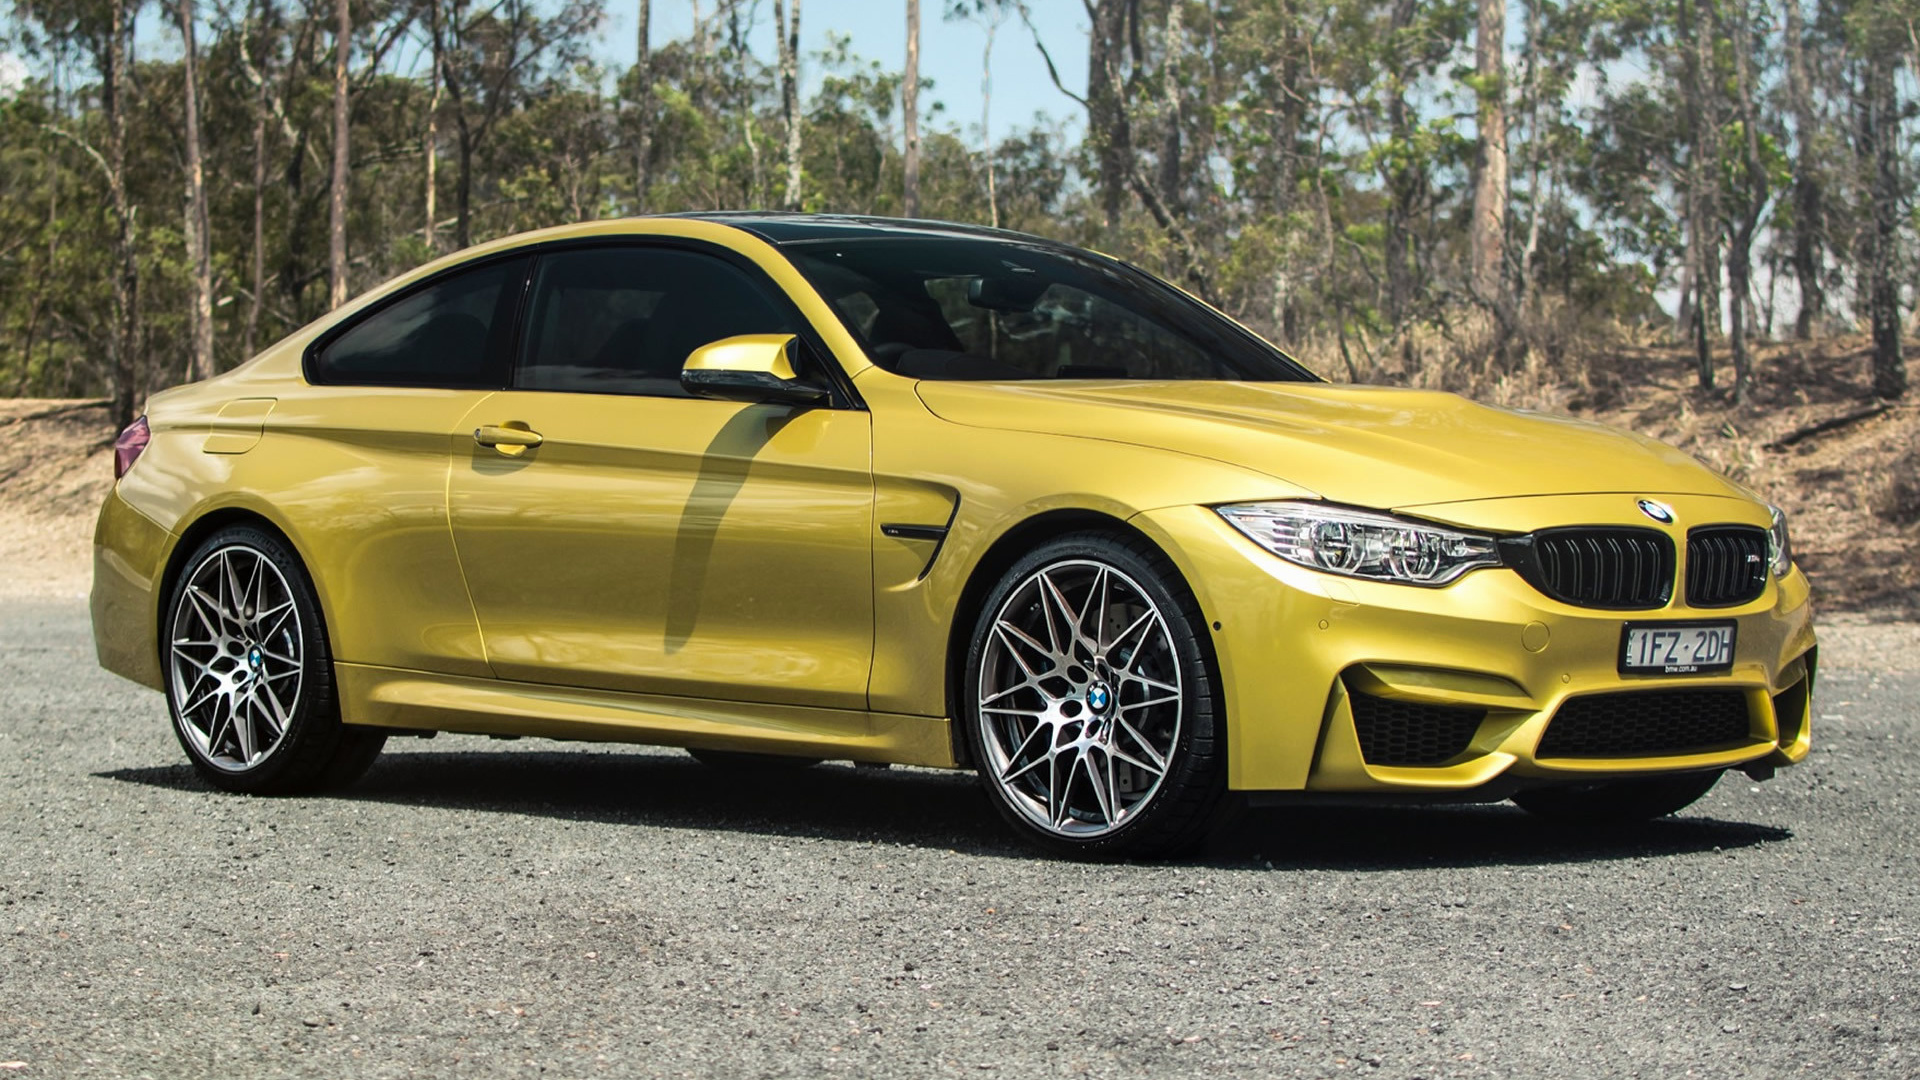 2016 Bmw M4 Coupe Competition Package Au Wallpapers